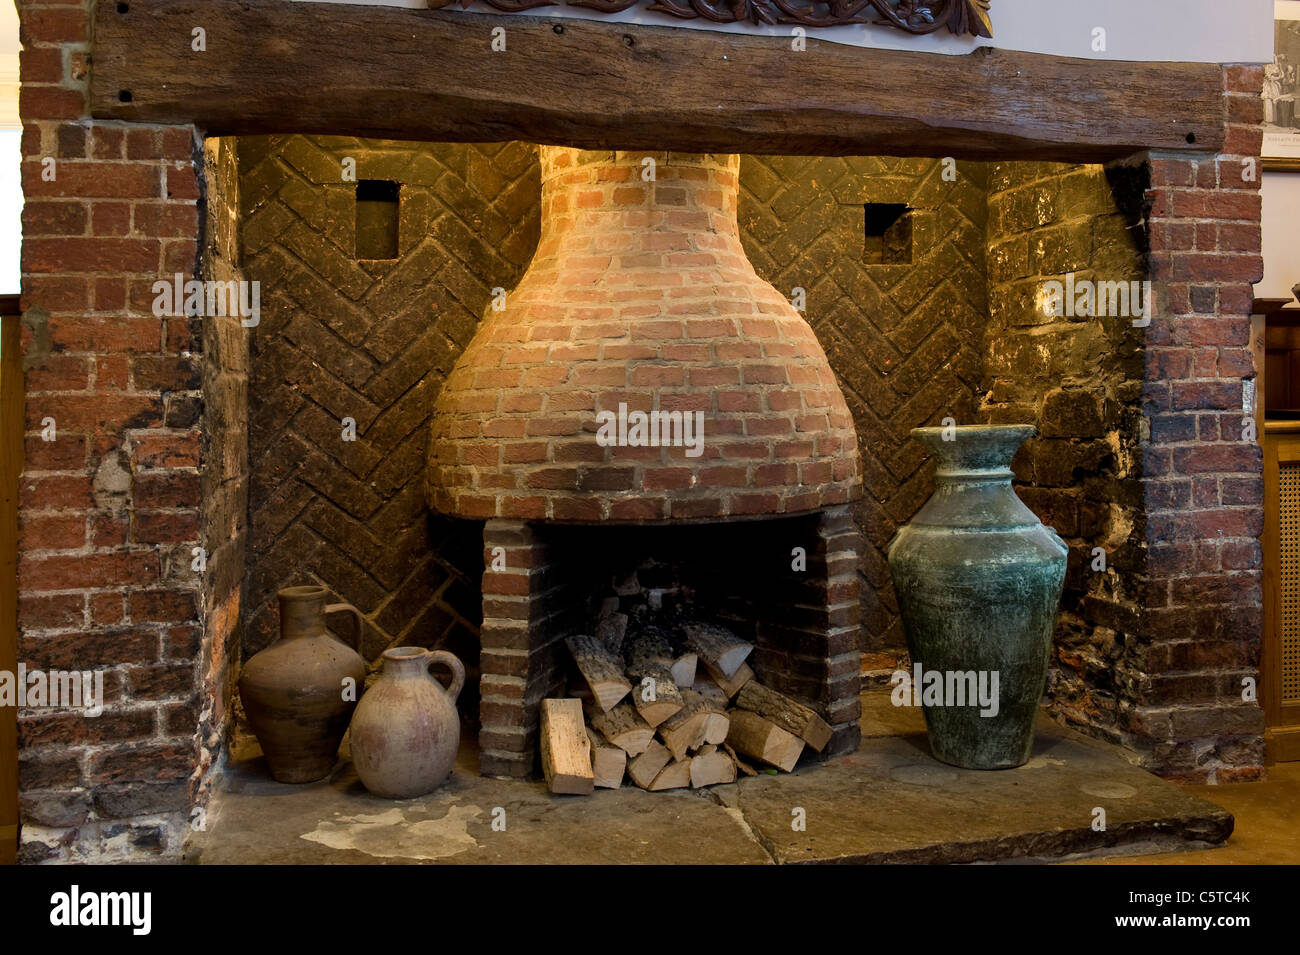 Old brick beehive inglenook fireplace with oak beam and